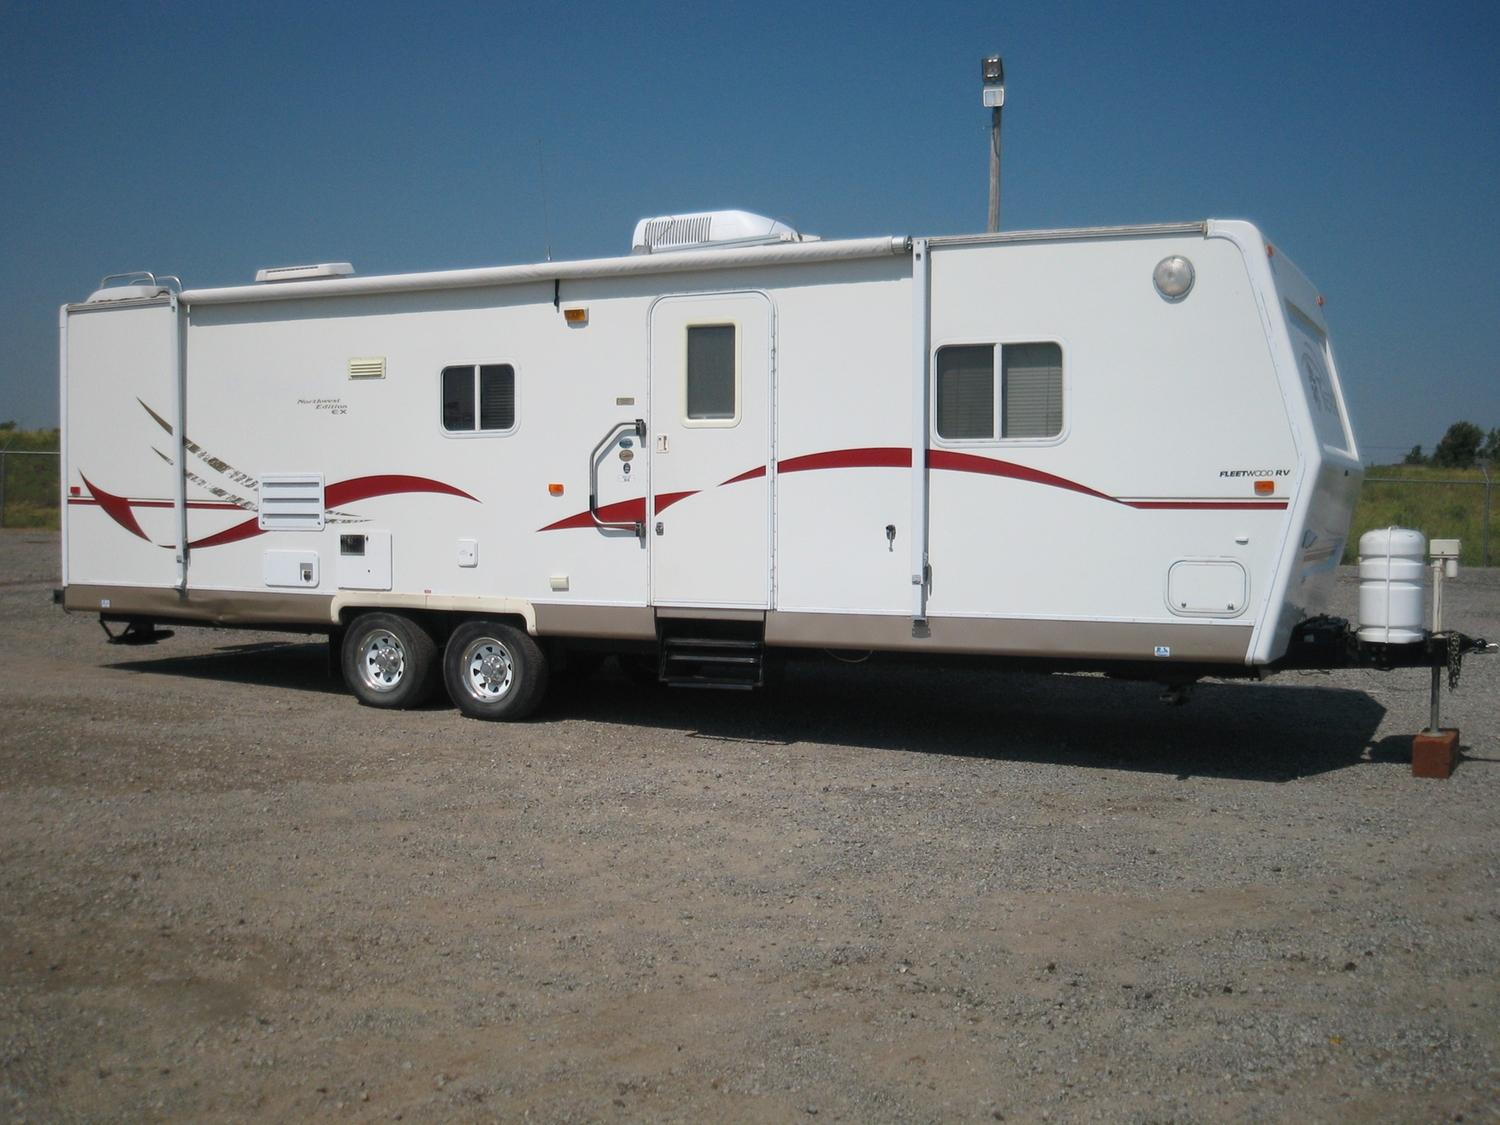 2002 TERRY EX MOD: 31G 31 5' TRAVEL TRAILER BY FLEETWOOD, NORTHWEST EX  EDITION, FREEDOM PACKAGE